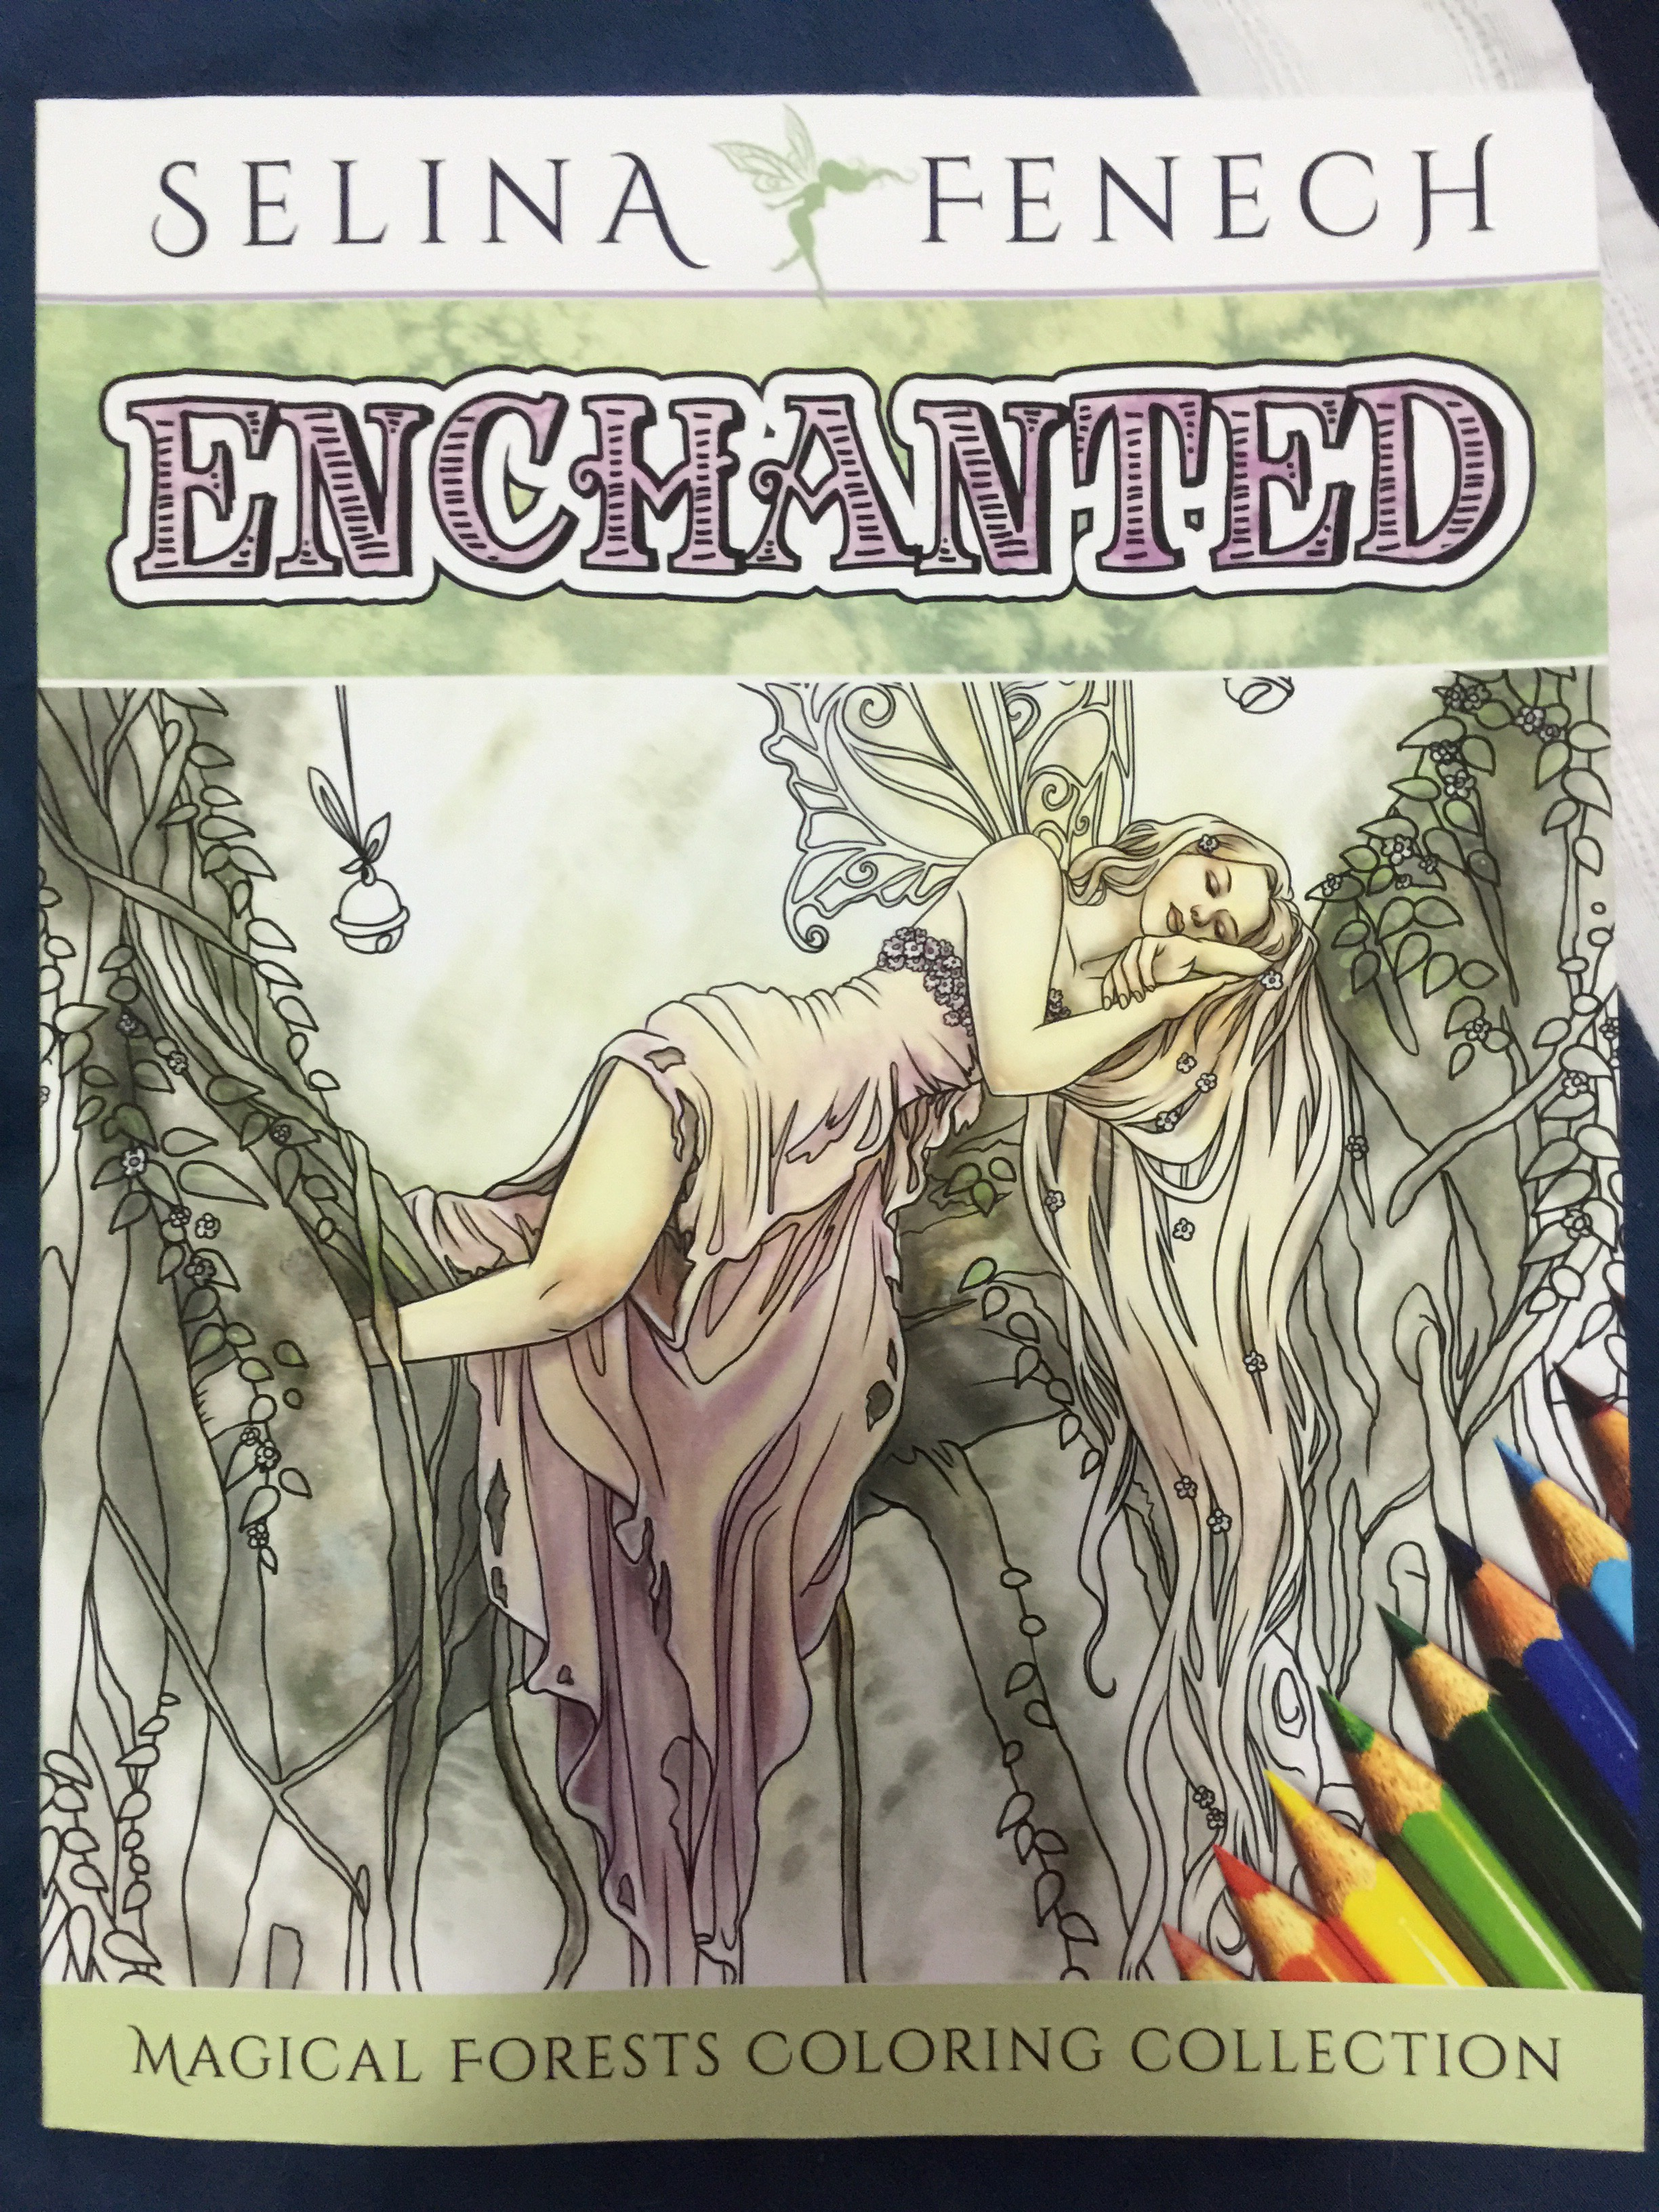 selina fenech colouring enchanted fantasy coloring adult fairy dragon pencil colored color pencils markers  unicorn